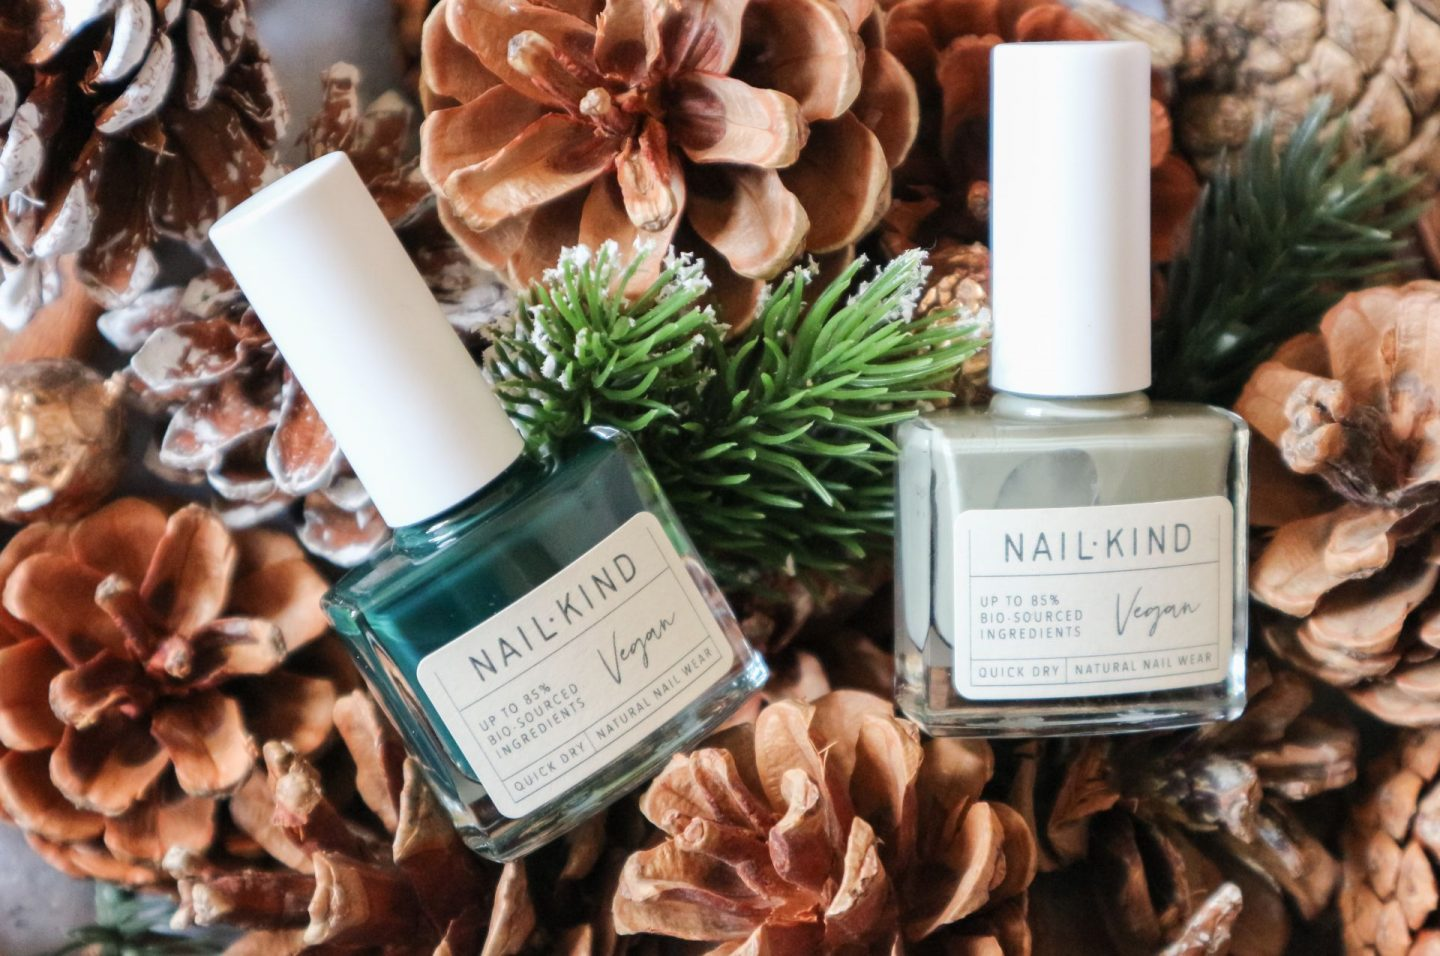 Nailkind Vegan Natural Nail Polish review